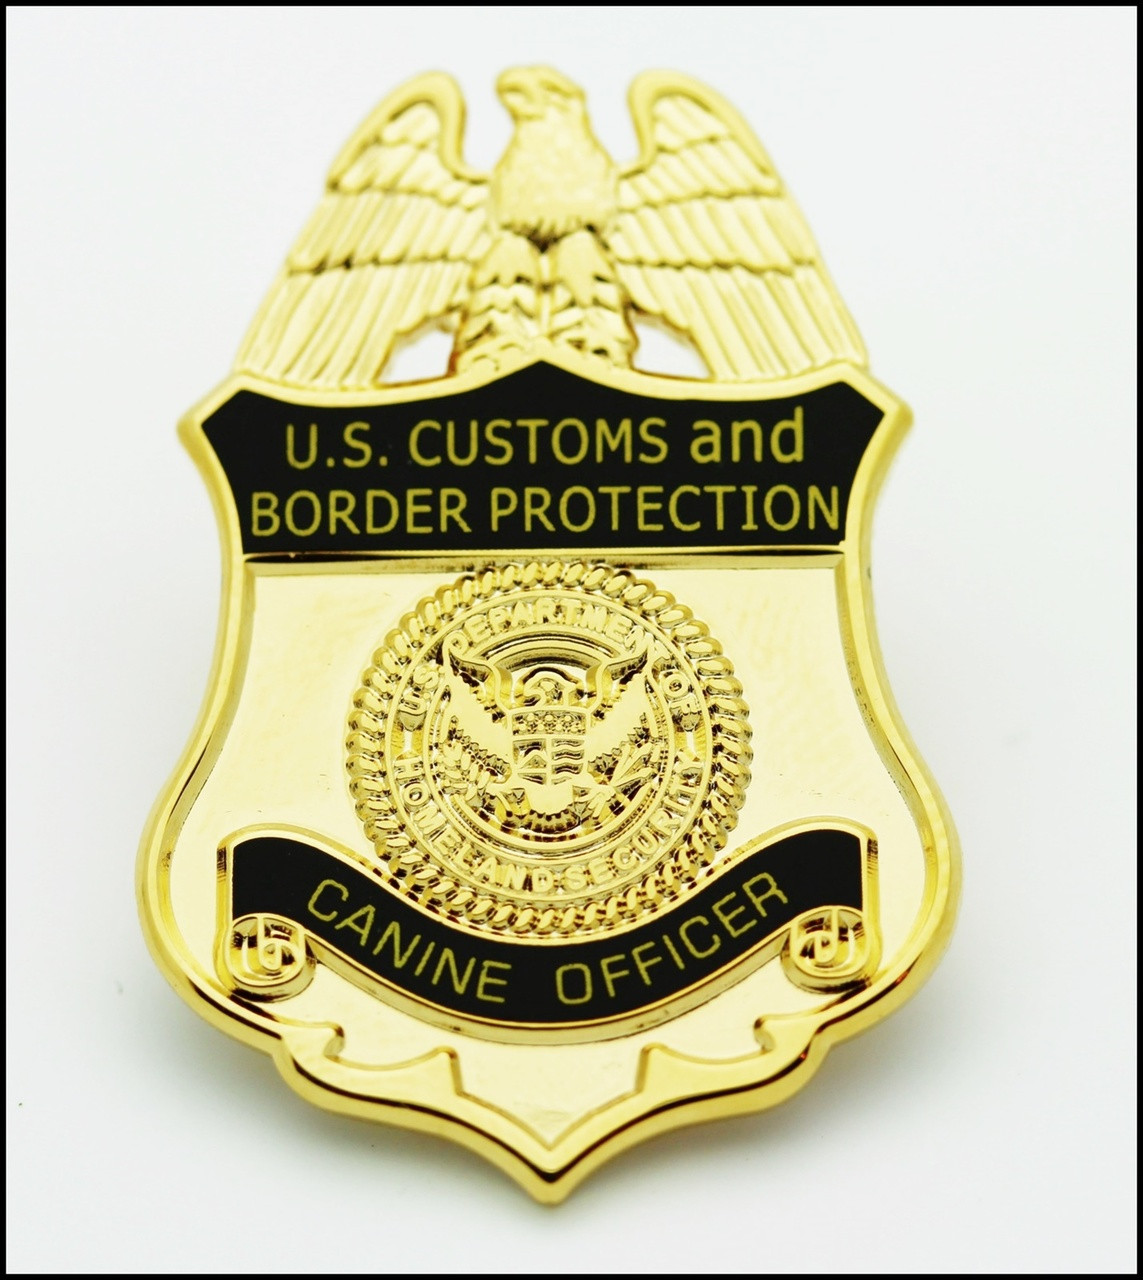 Customs and Border Protection Canine Officer Mini Badge Lapel Pin